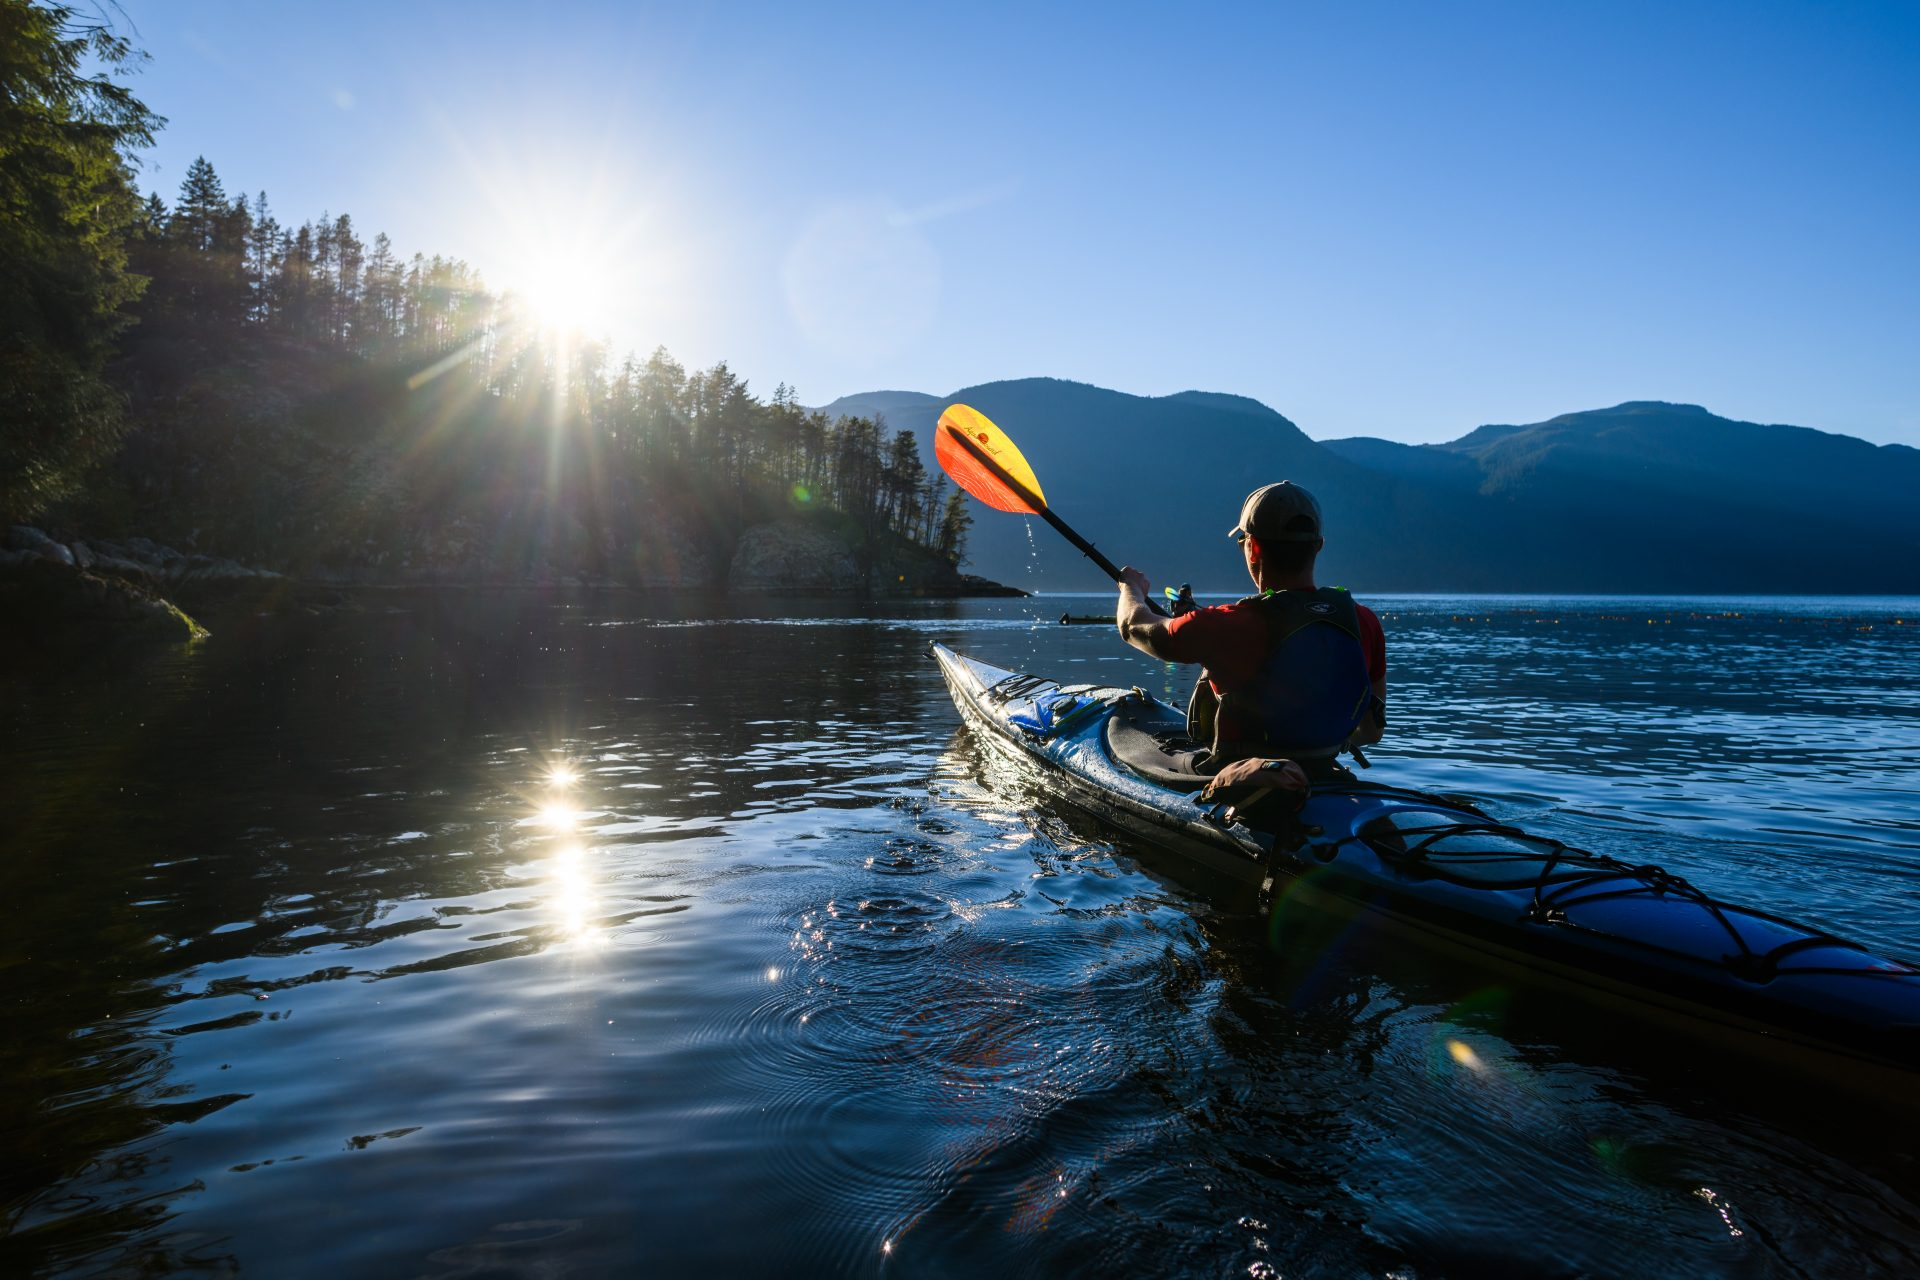 Whether or not you use a feathered paddle should depend on your paddling style and paddle length, according to author Brian Day. | Photo: Andrew Strain